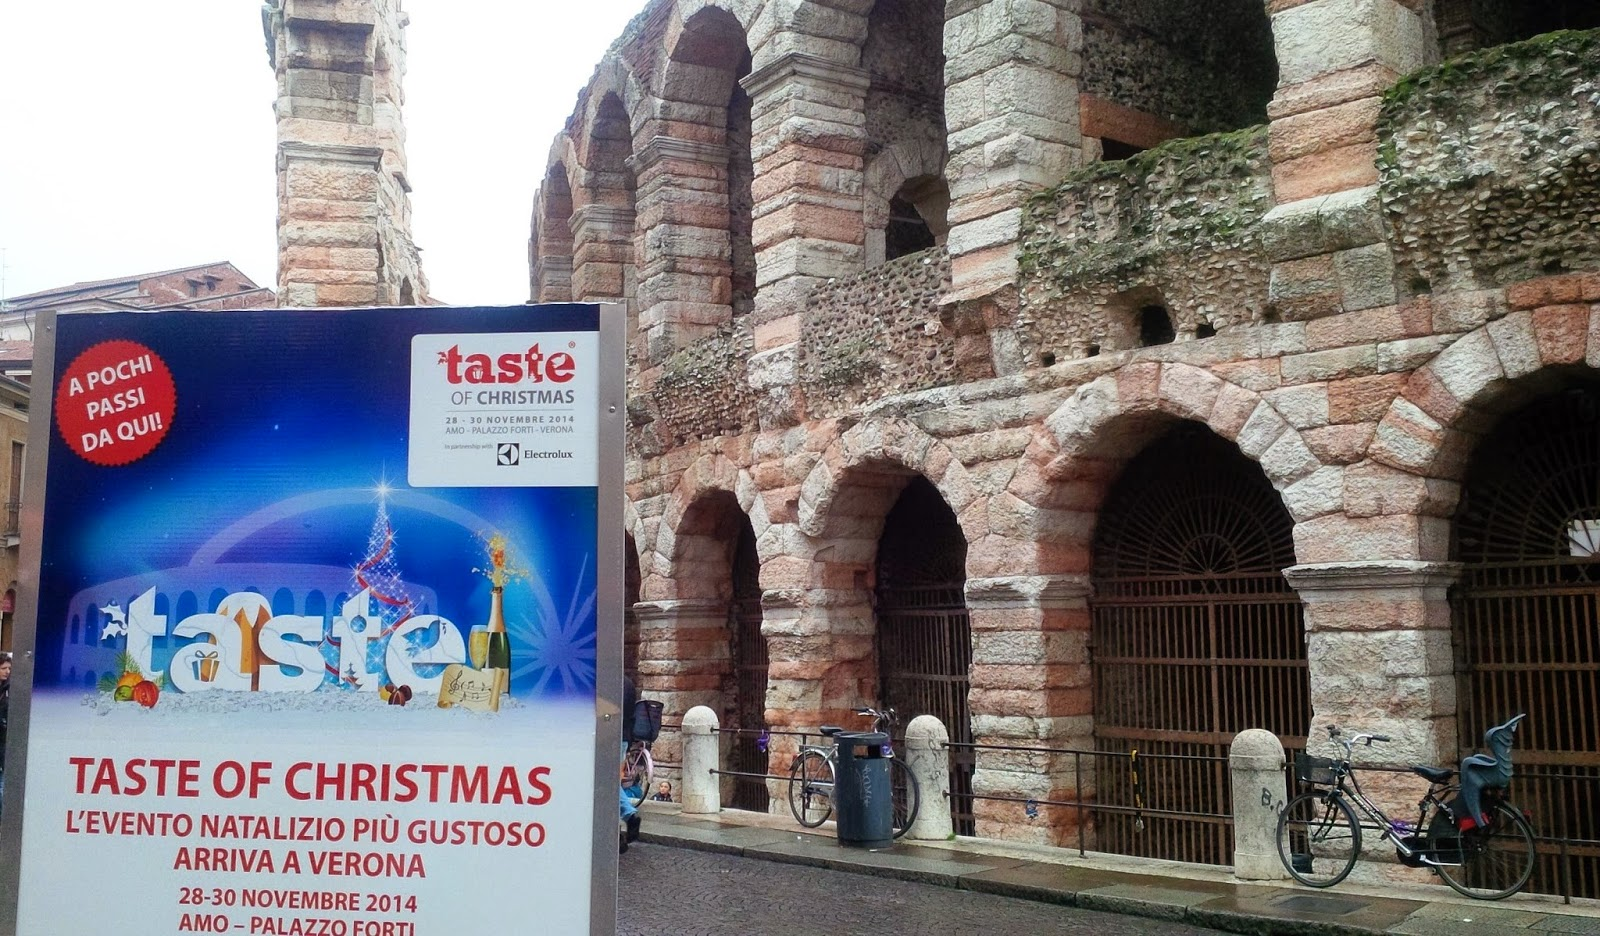 Taste pf Christmas billboard in front of Arena di Verona